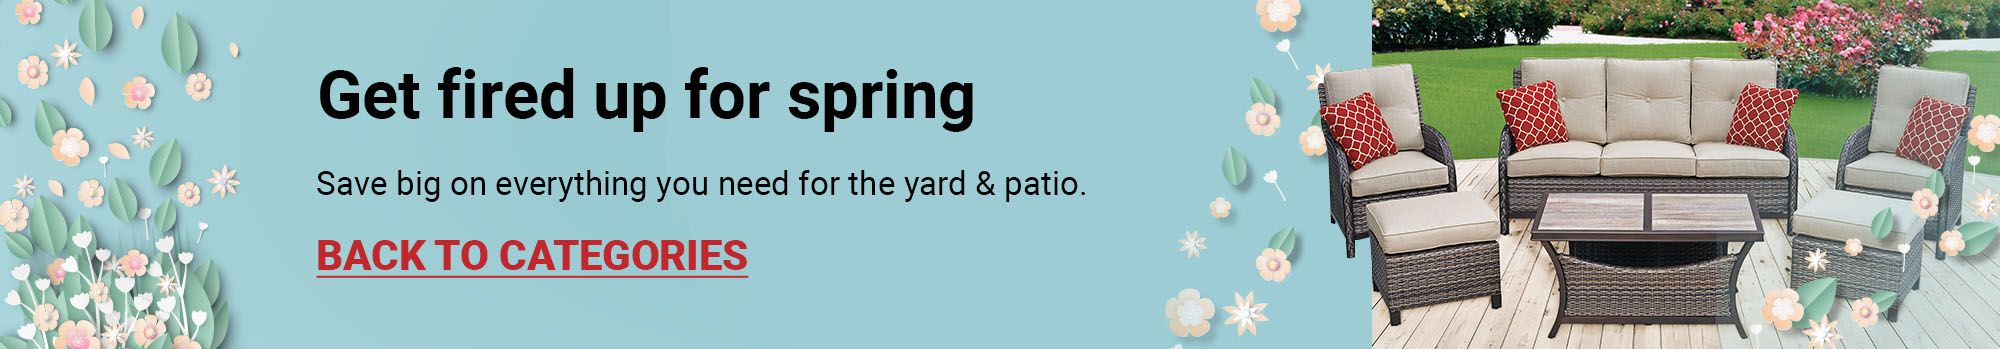 Get fired up for spring. Save big on everything you need for the yard & patio. Click to go back to Categories